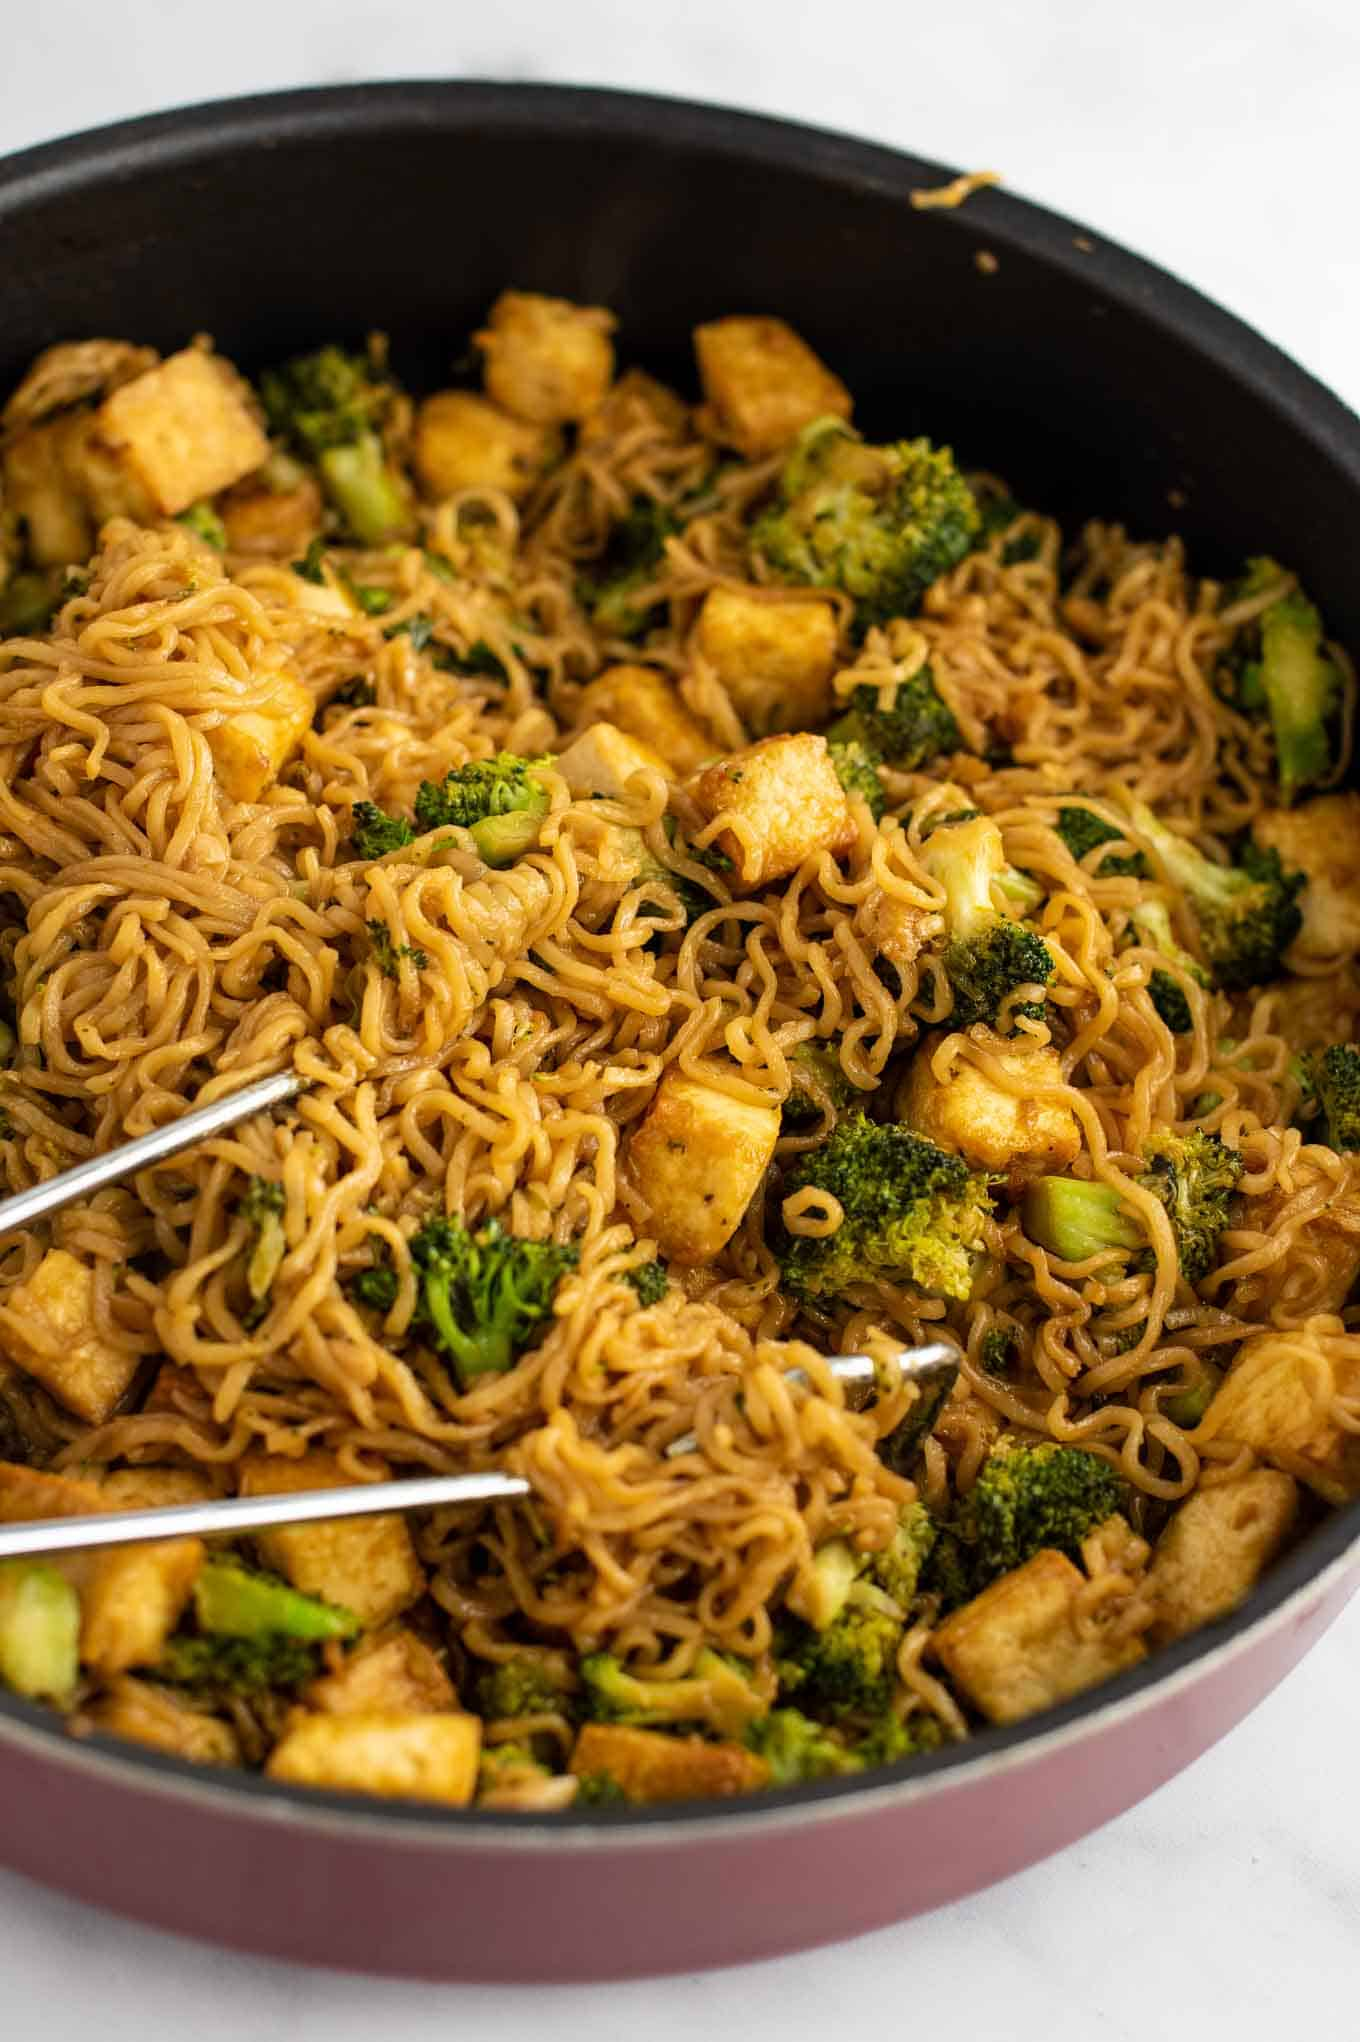 ramen noodle broccoli tofu stir fry in a pan from a side view